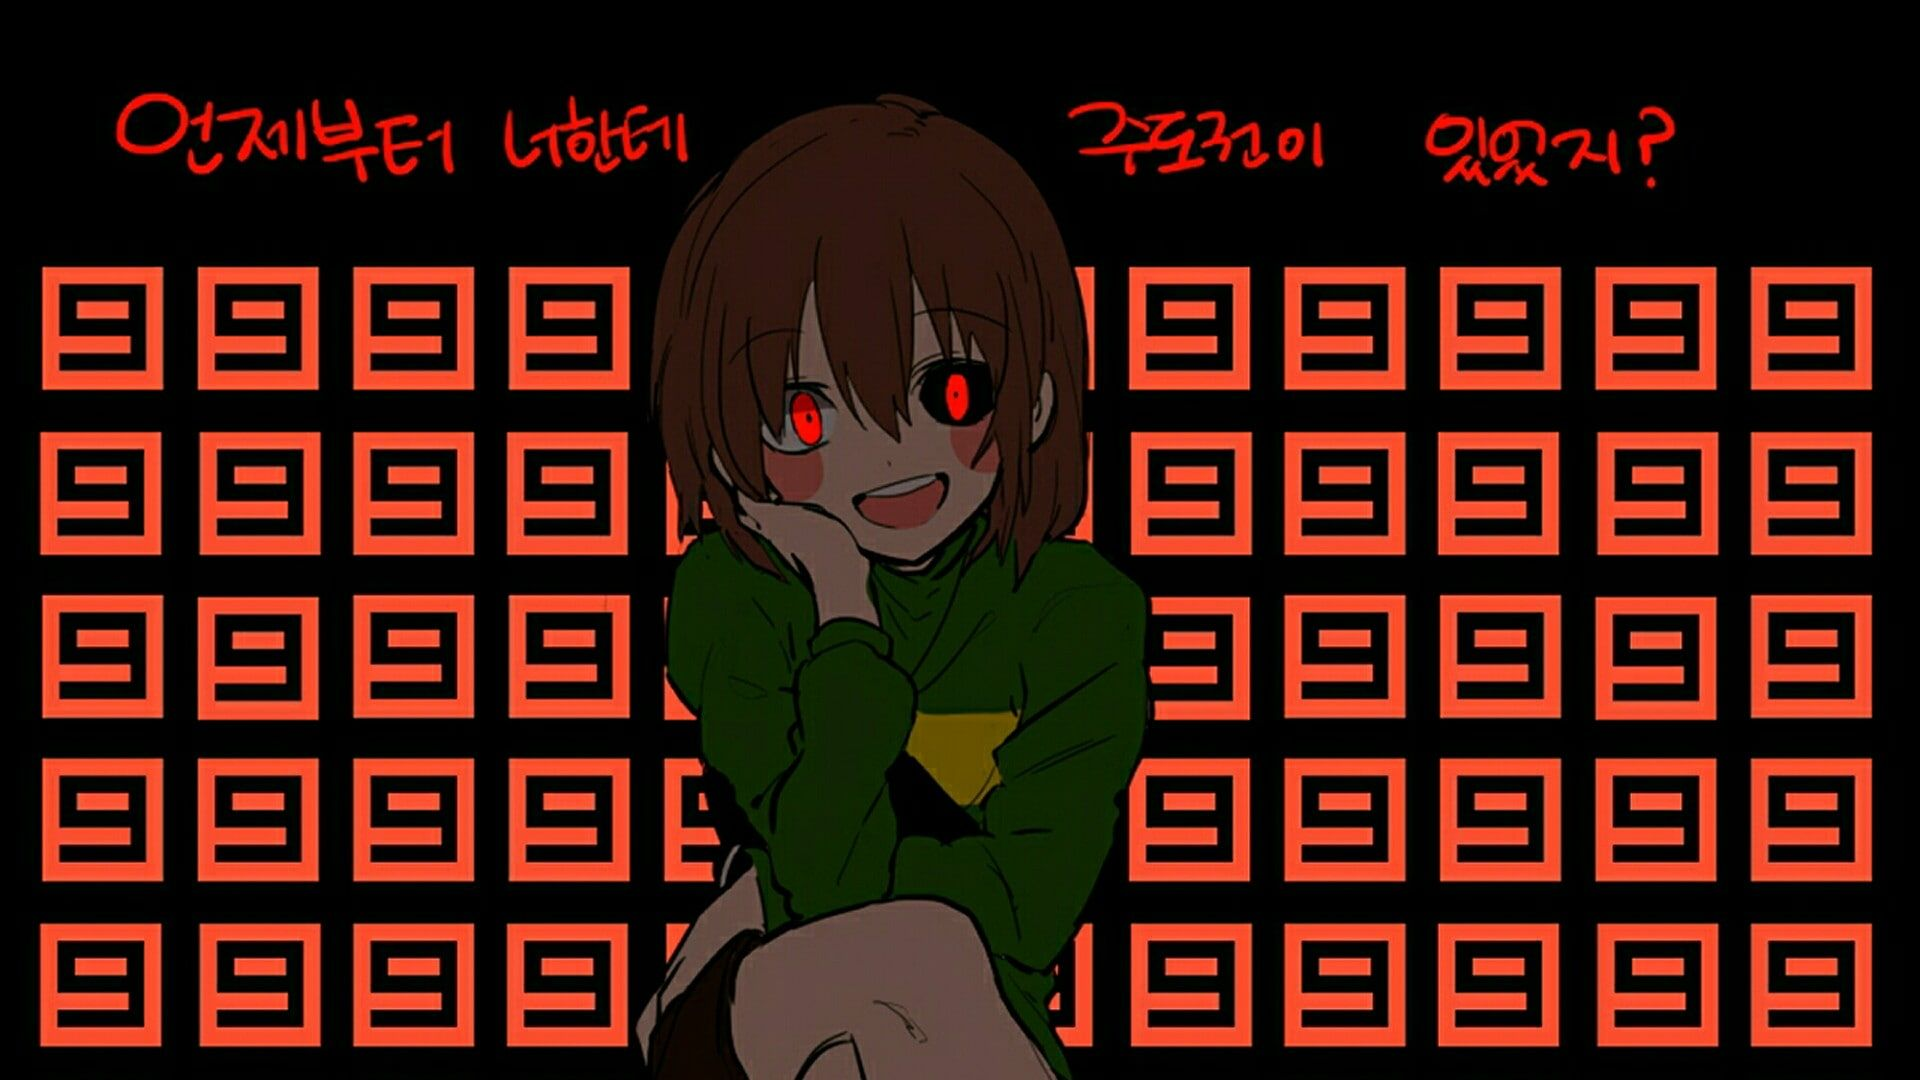 Chara Undertale Wallpapers Top Free Chara Undertale Backgrounds